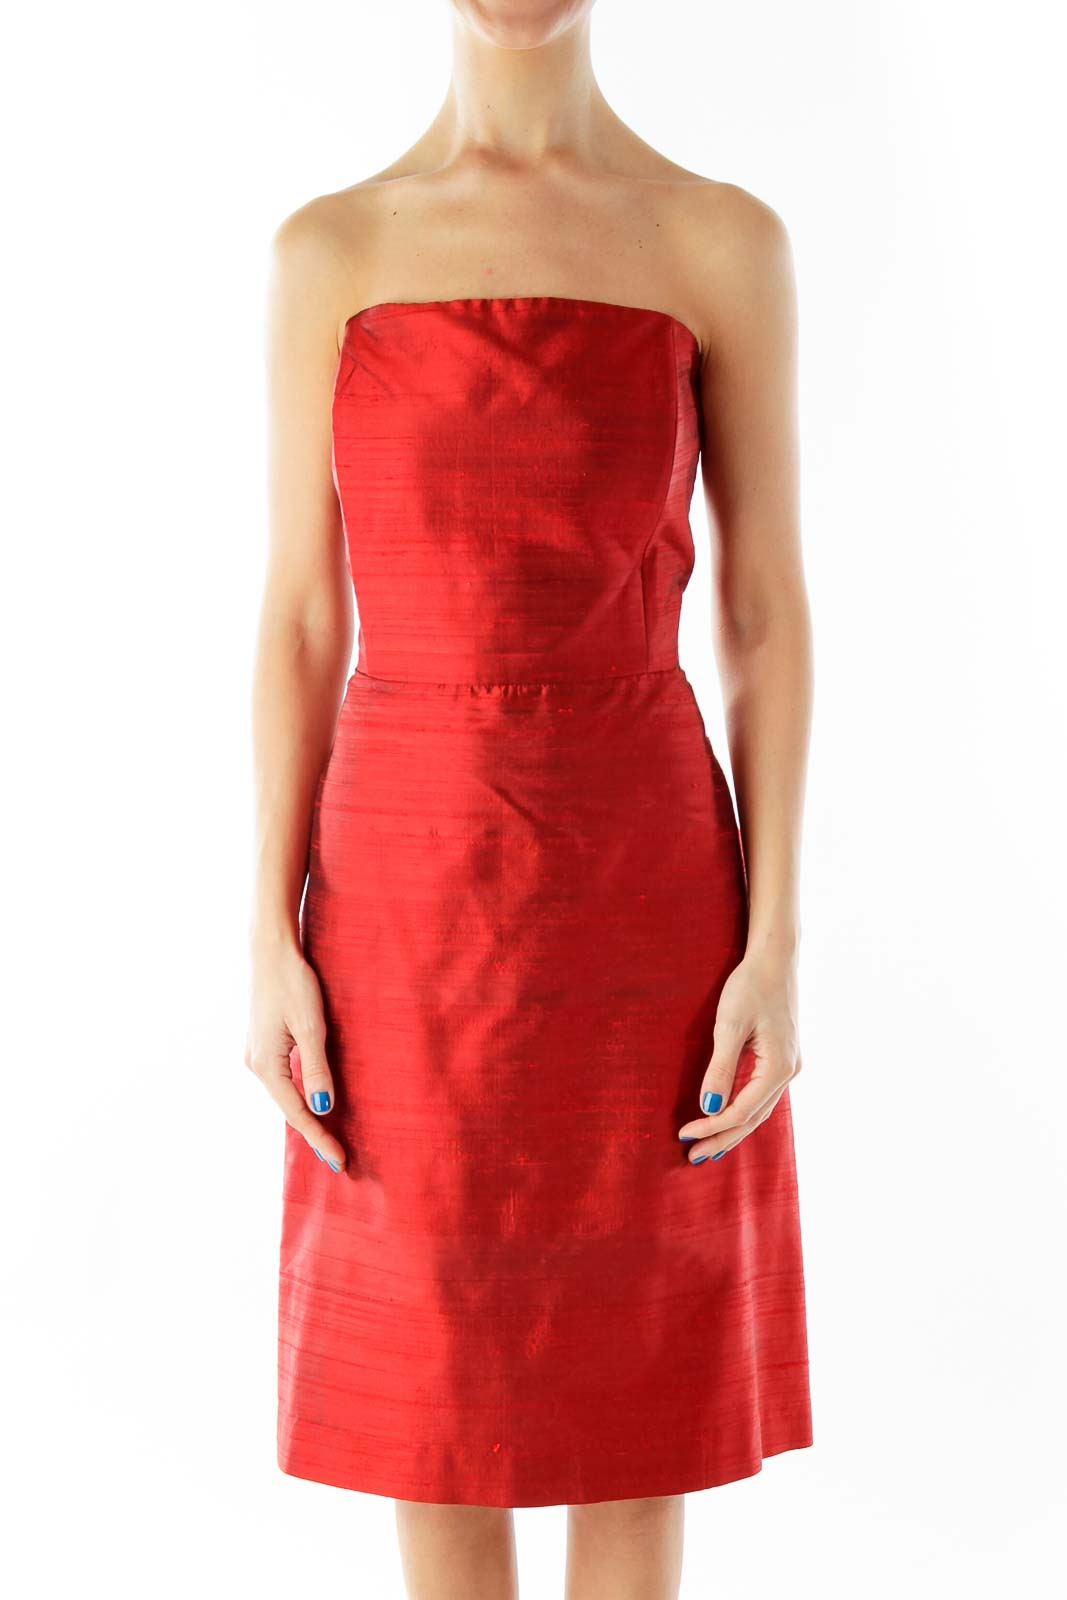 Red Satin Strapless Dress Front